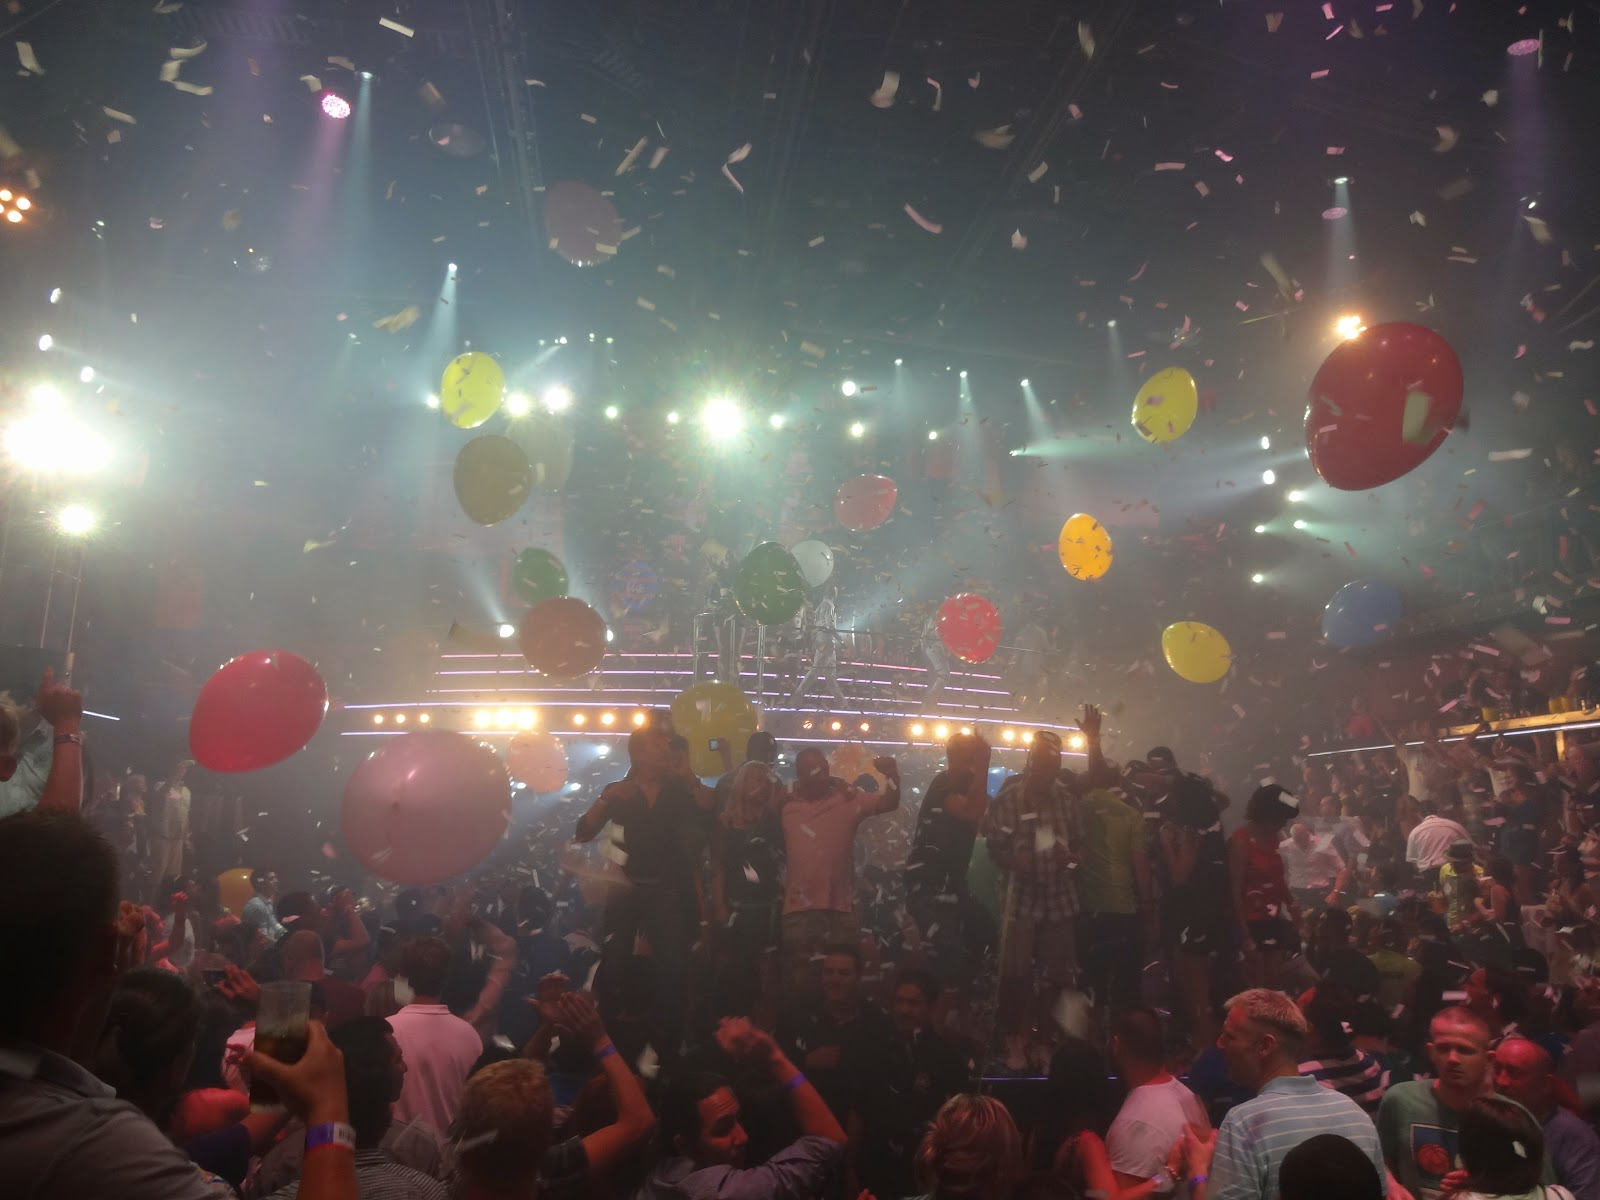 festa na boate CocoBongo - Cancún